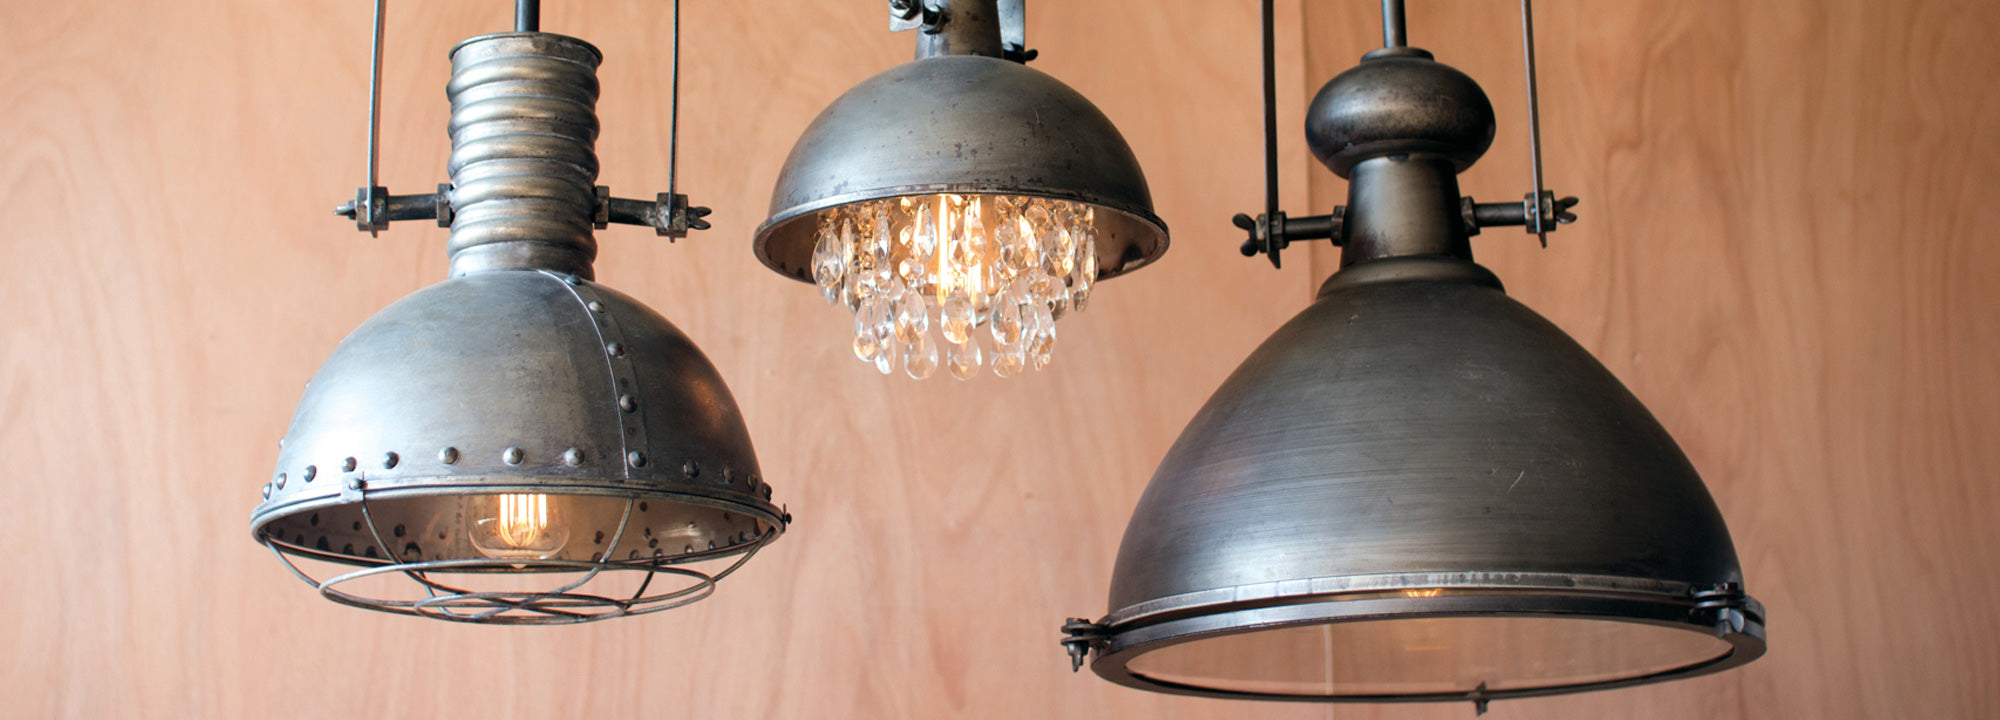 Farmhouse decor rustic lighting twig chandeliers and more farmhouse lights arubaitofo Images